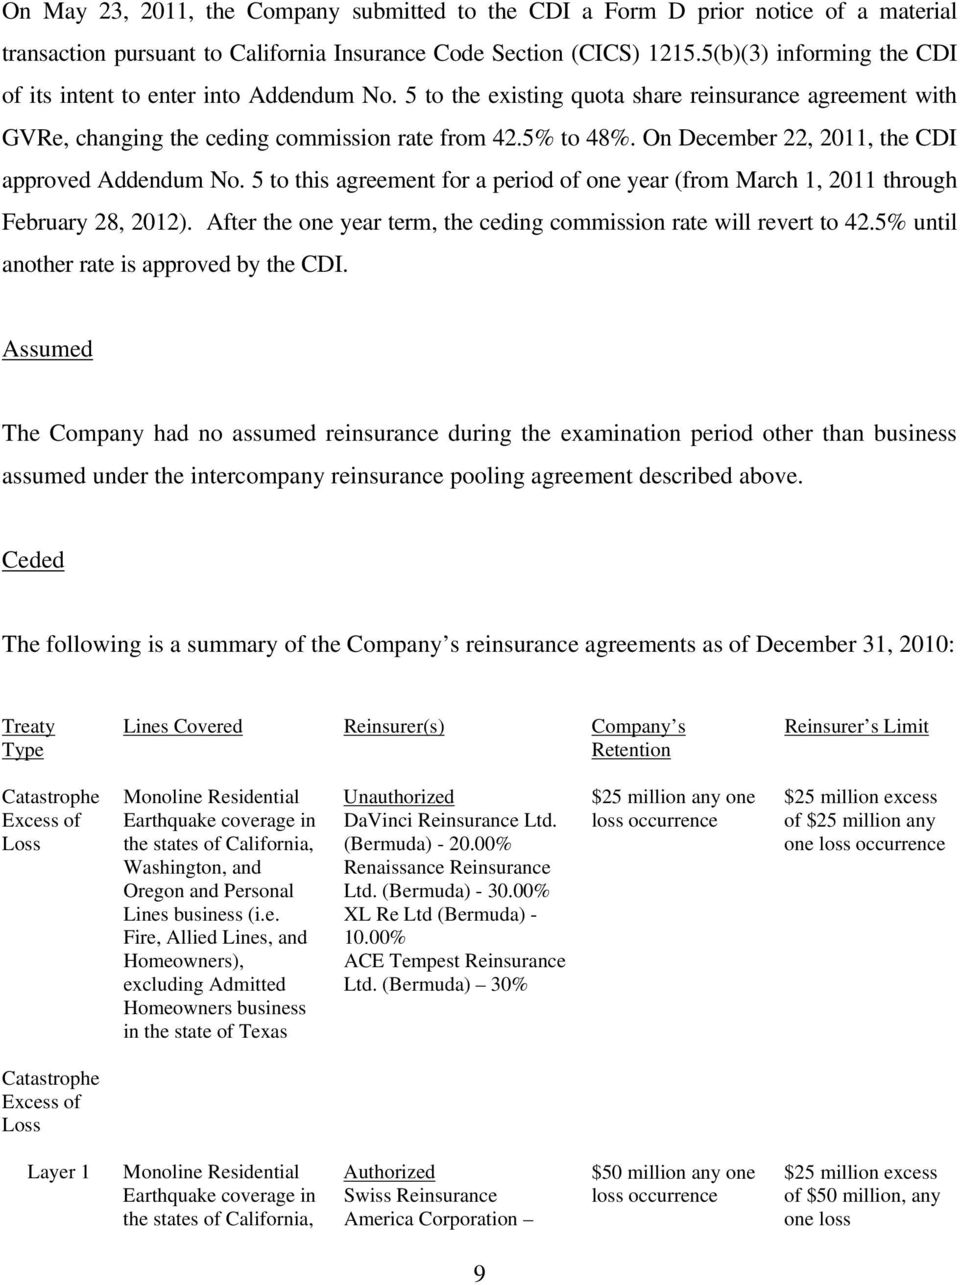 On December 22, 2011, the CDI approved Addendum No. 5 to this agreement for a period of one year (from March 1, 2011 through February 28, 2012).